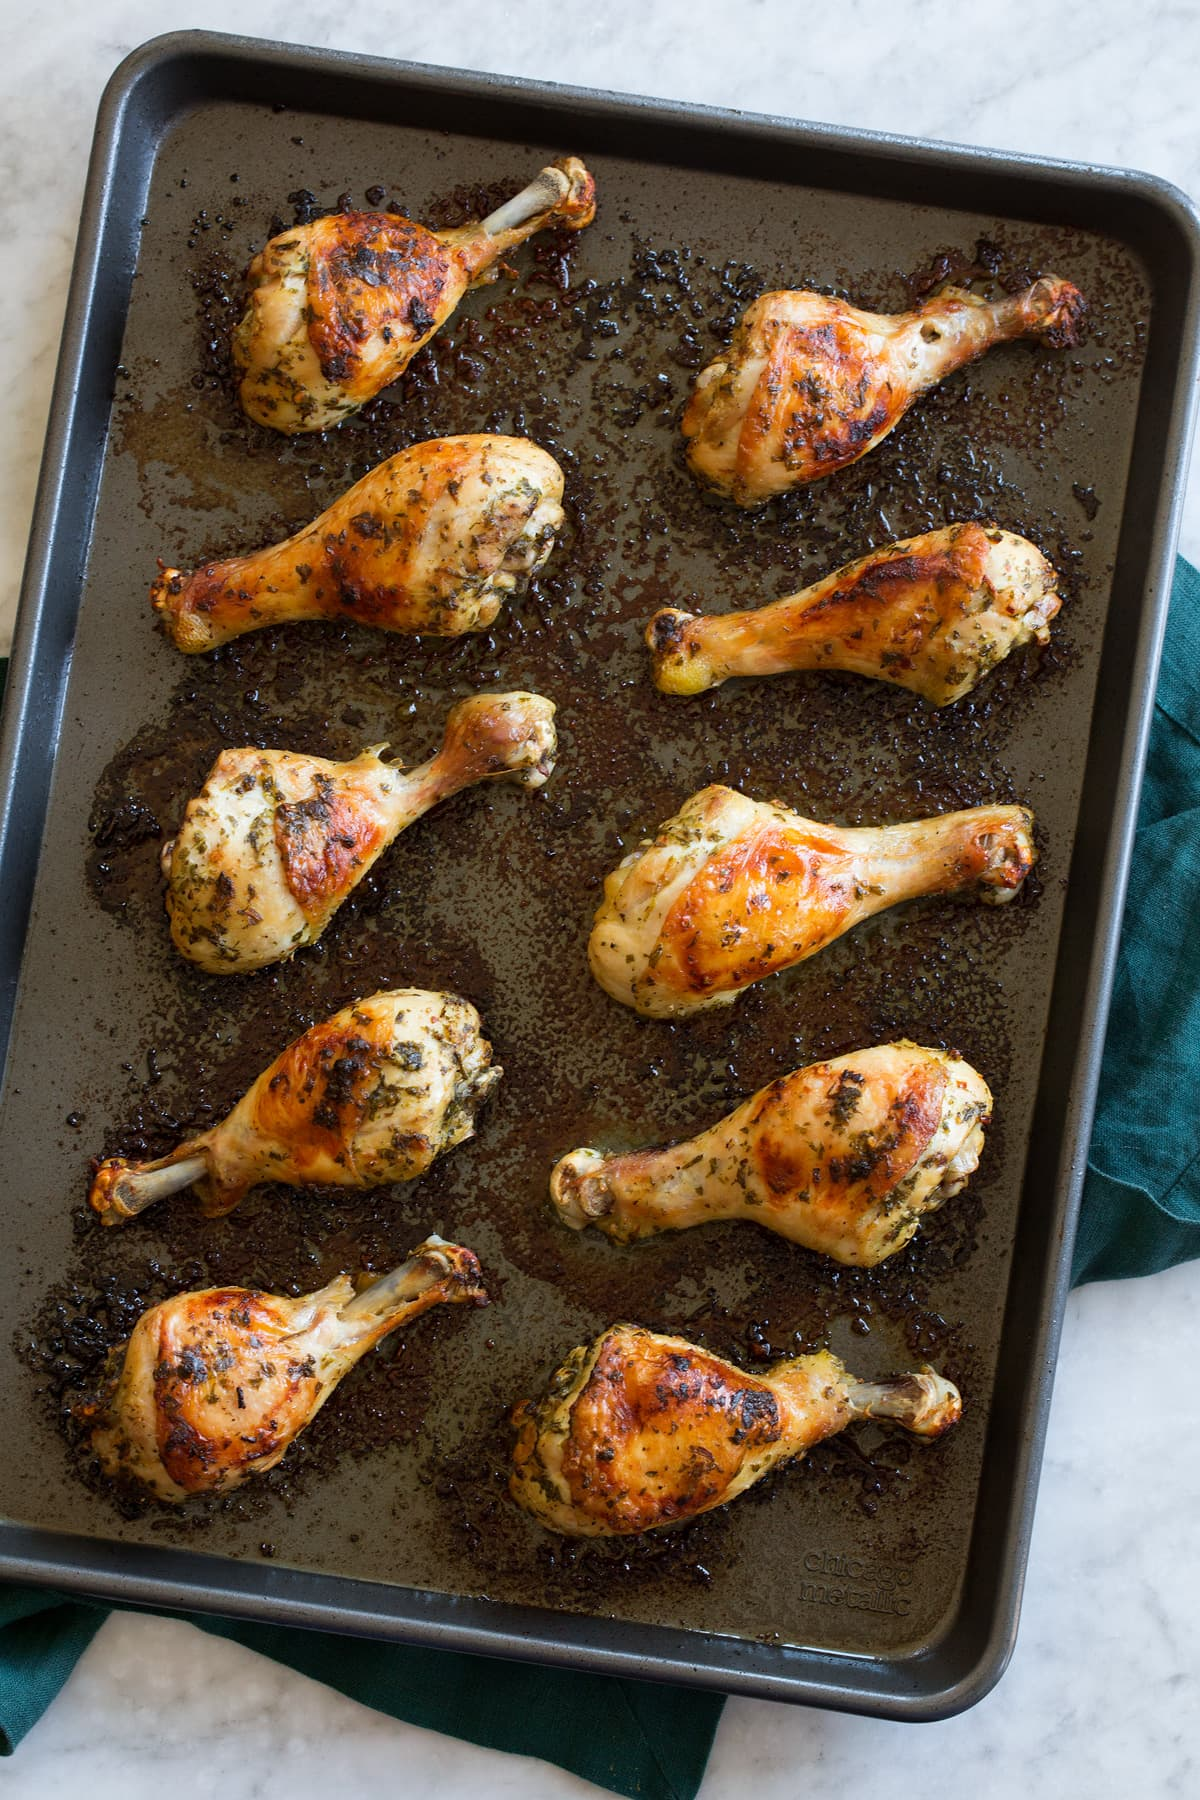 Chicken legs shown on a baking sheet from above, after they're done baking.